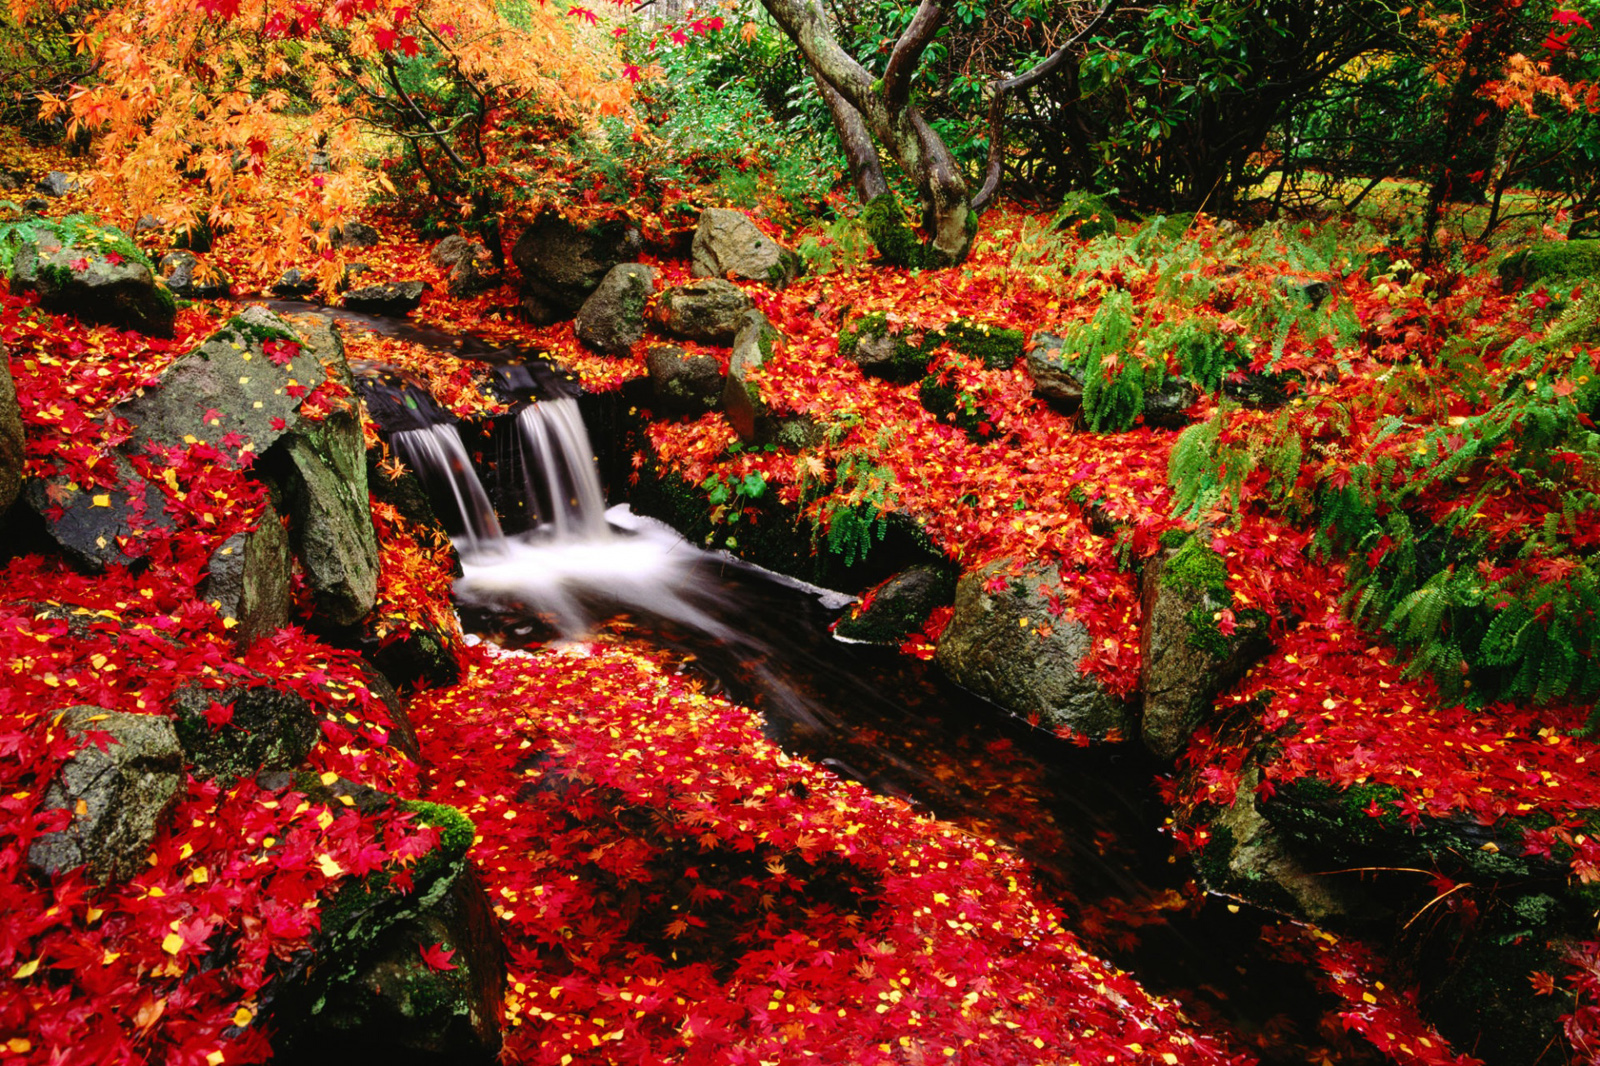 Free Desktop Wallpaper Autumn Leaves: Red Leaves Beautiful Fall Landscapes HD Wallpapers HQ